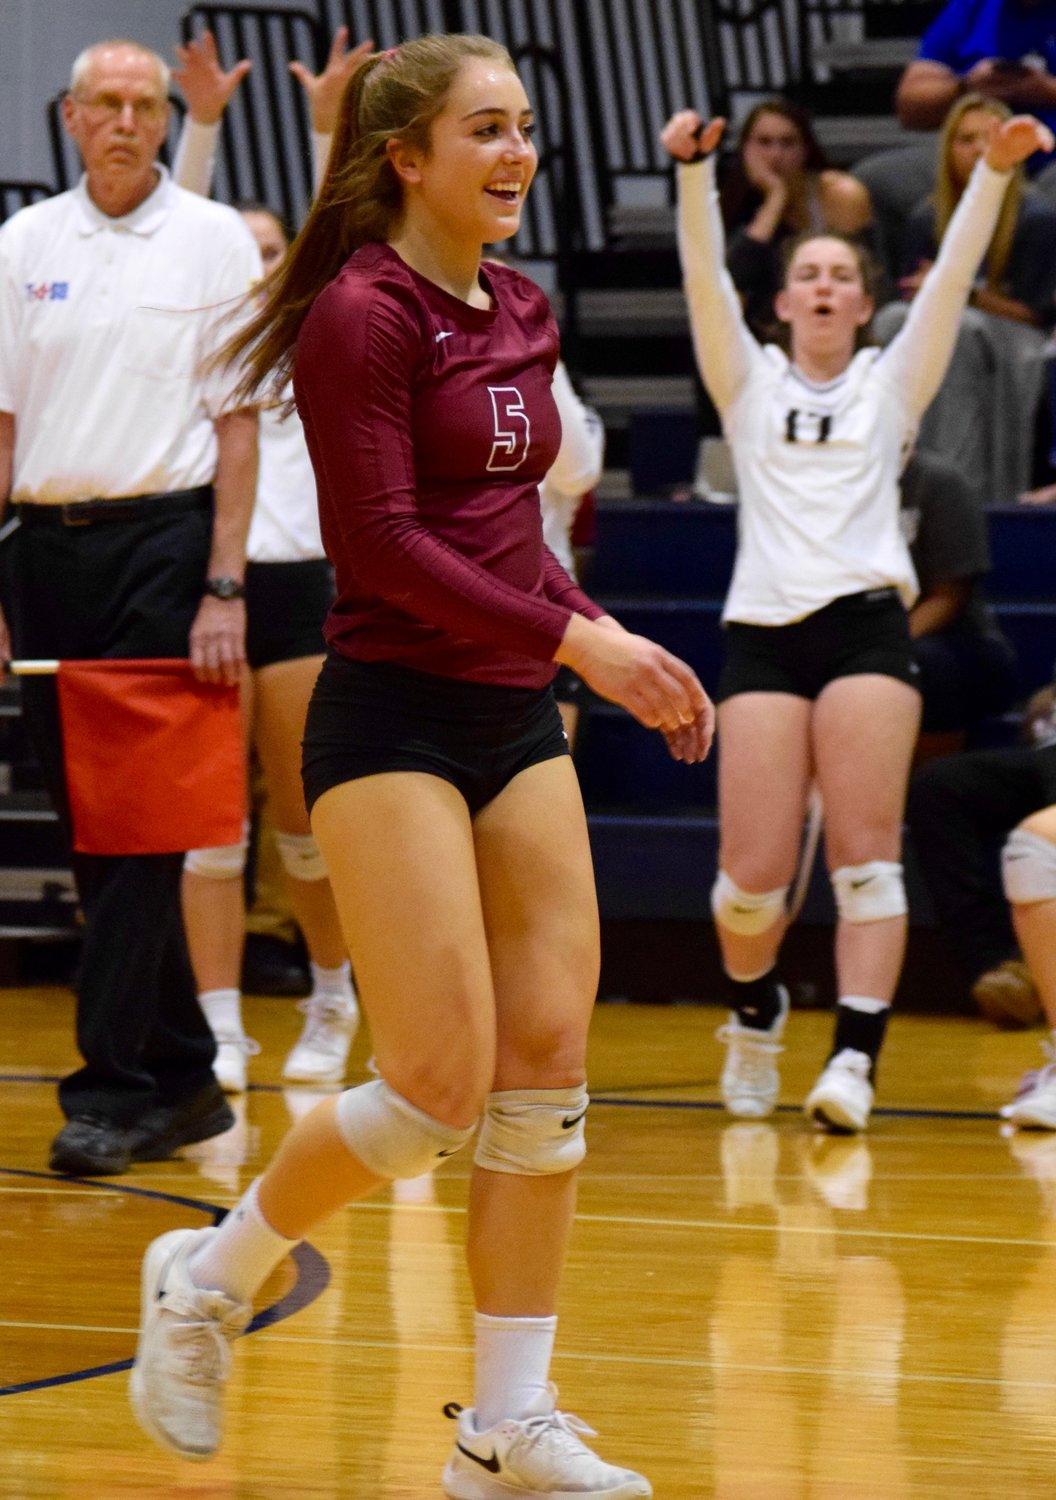 Reilly Heinrich and Rouse swept Bastrop 3-0 (25-16, 25-14, 25-23) on Tuesday night to advance to the area round of the playoffs for the third year in a row.